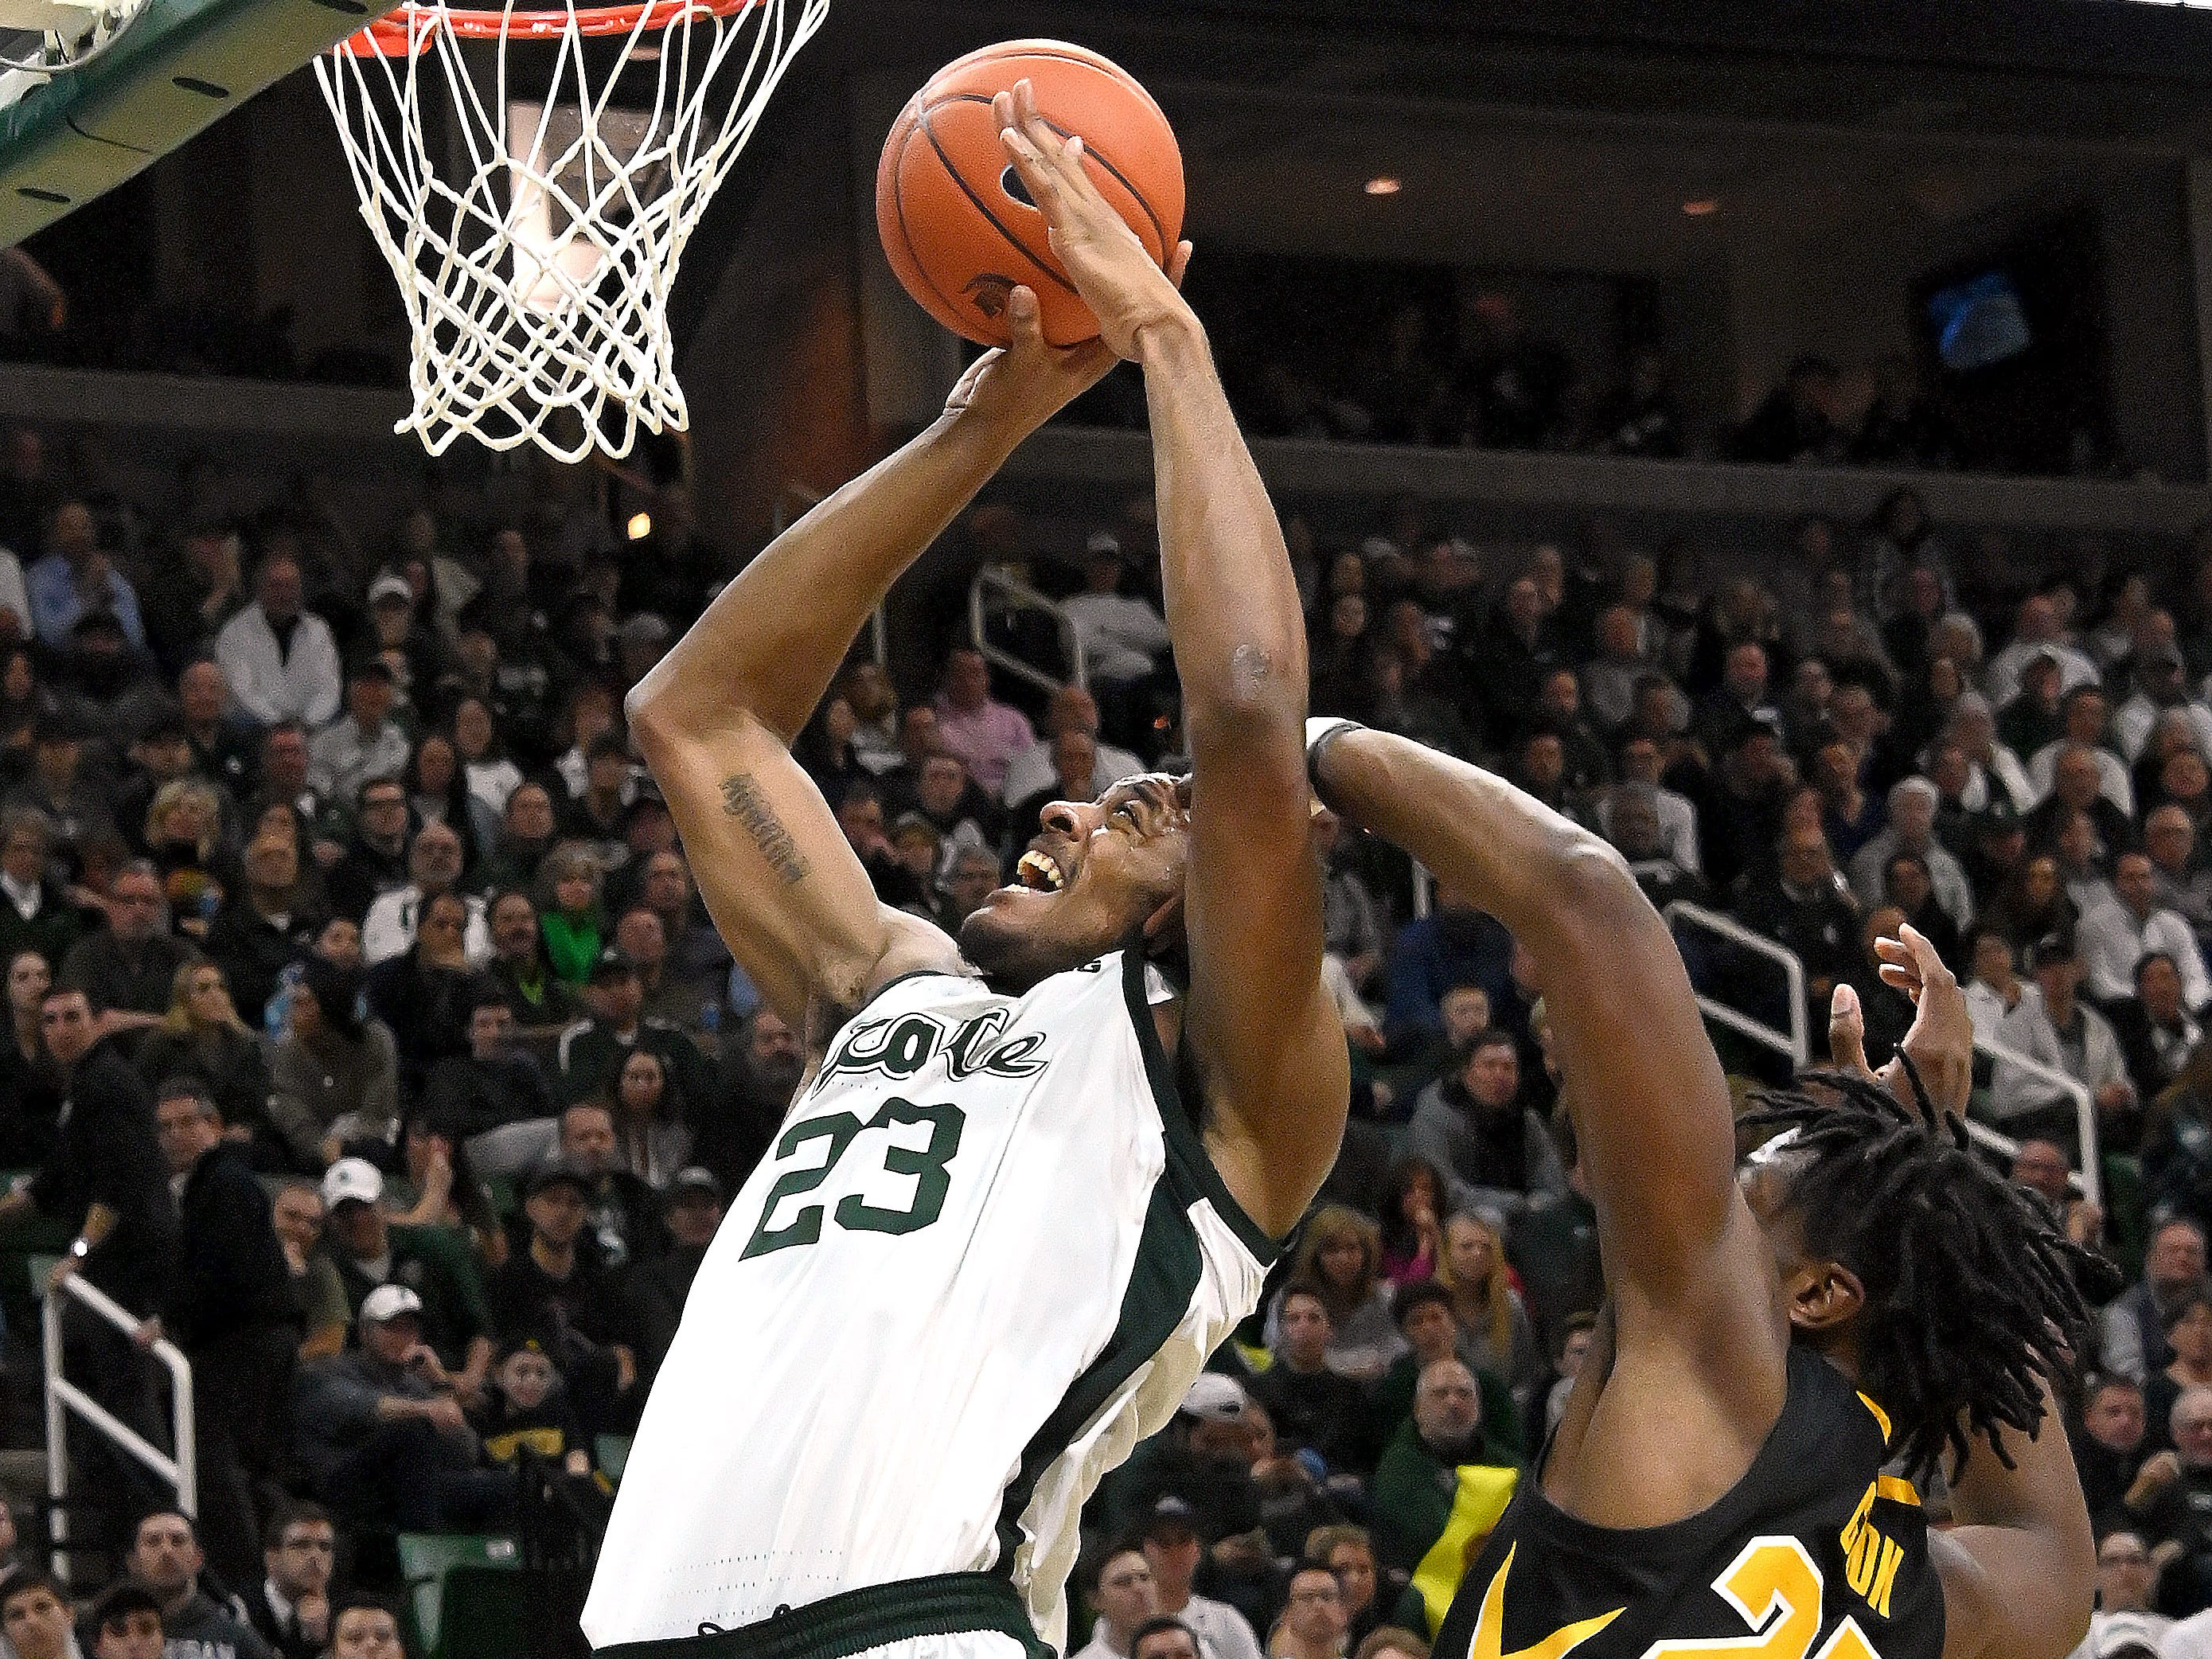 Xavier Tillman gets fouled by Tyler Cook 25) in the first half under the Spartan basket.